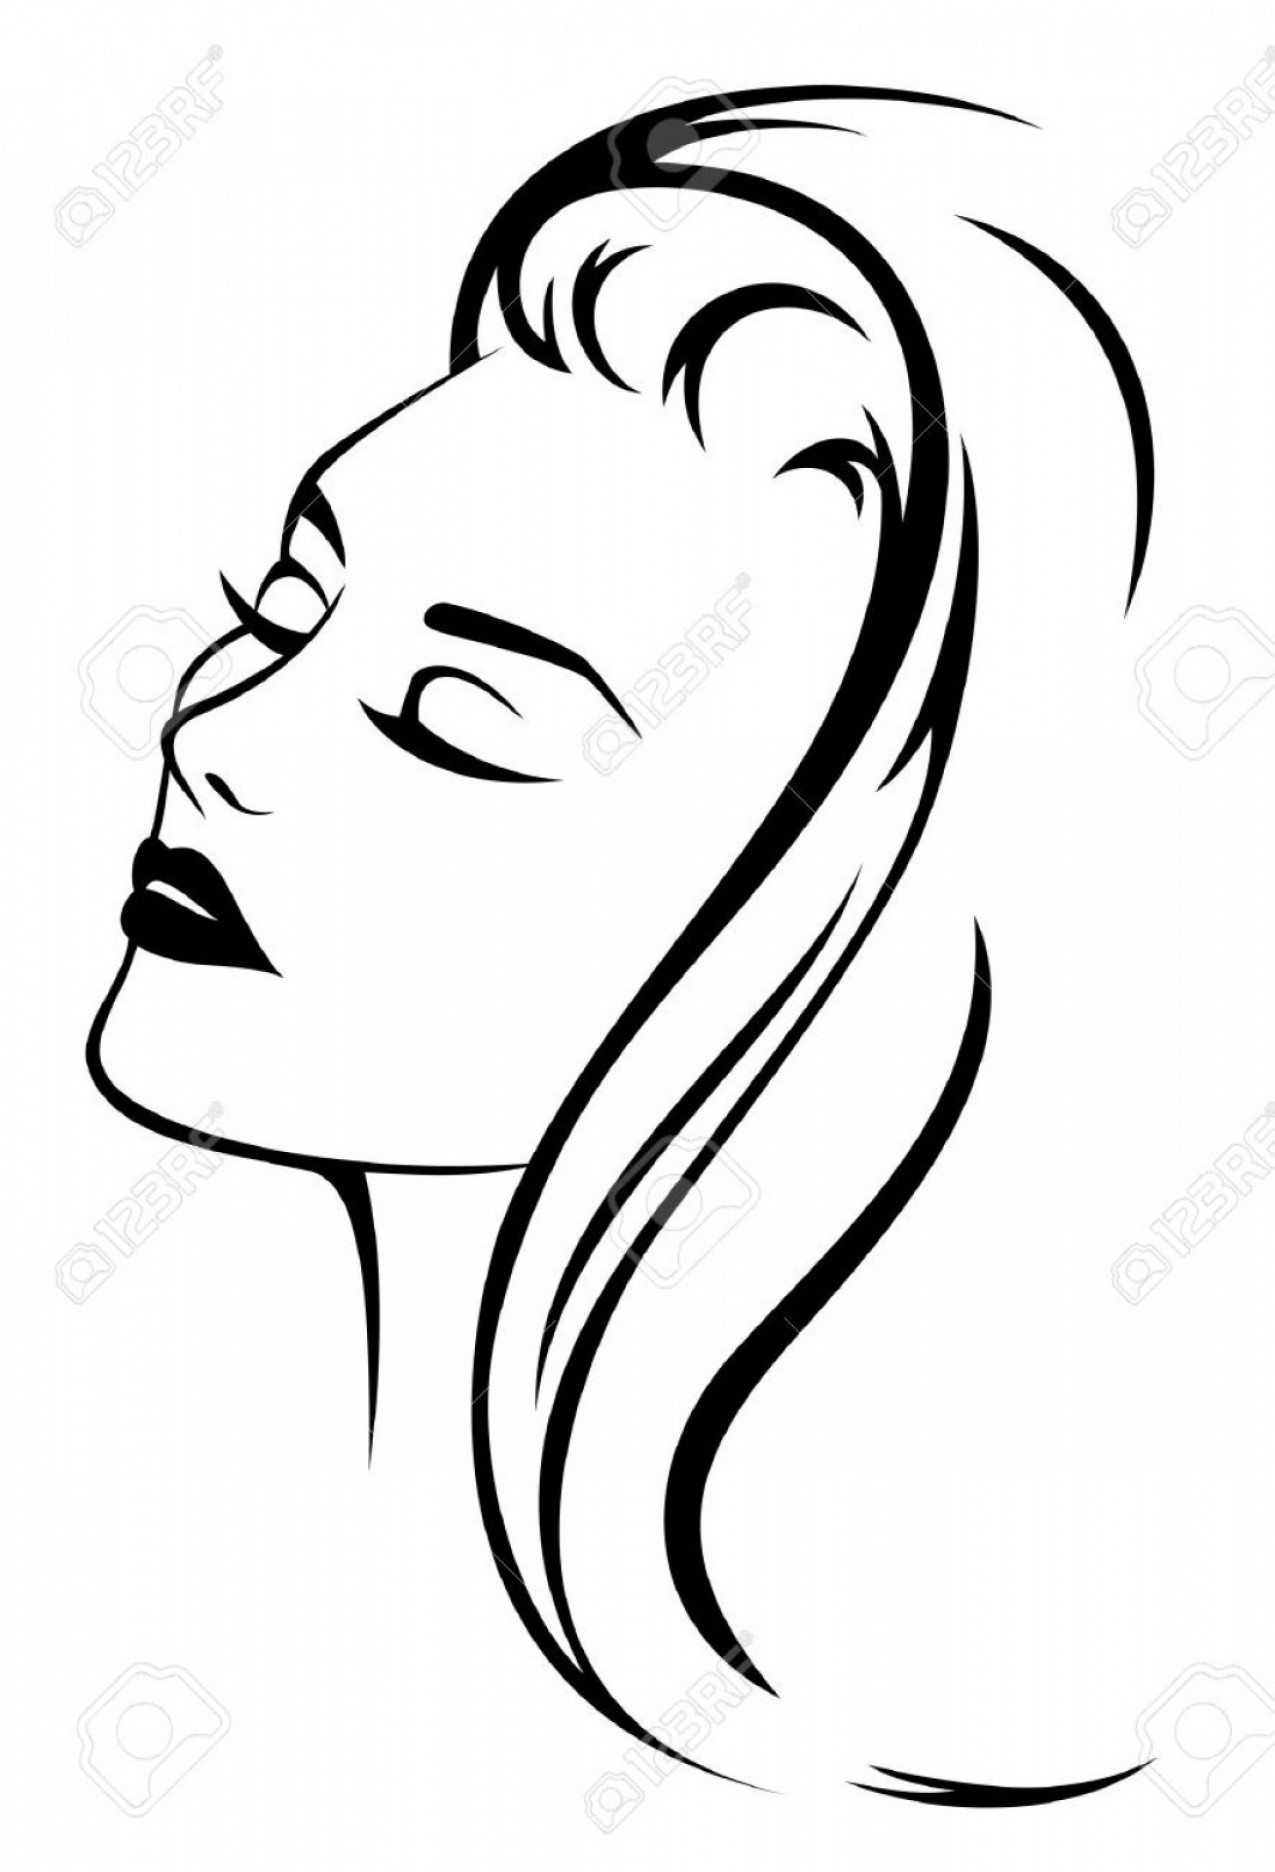 Girl Face Vector Art Black And White: Photobeautiful Woman Face With Long Hair Black And White Vector Illustration